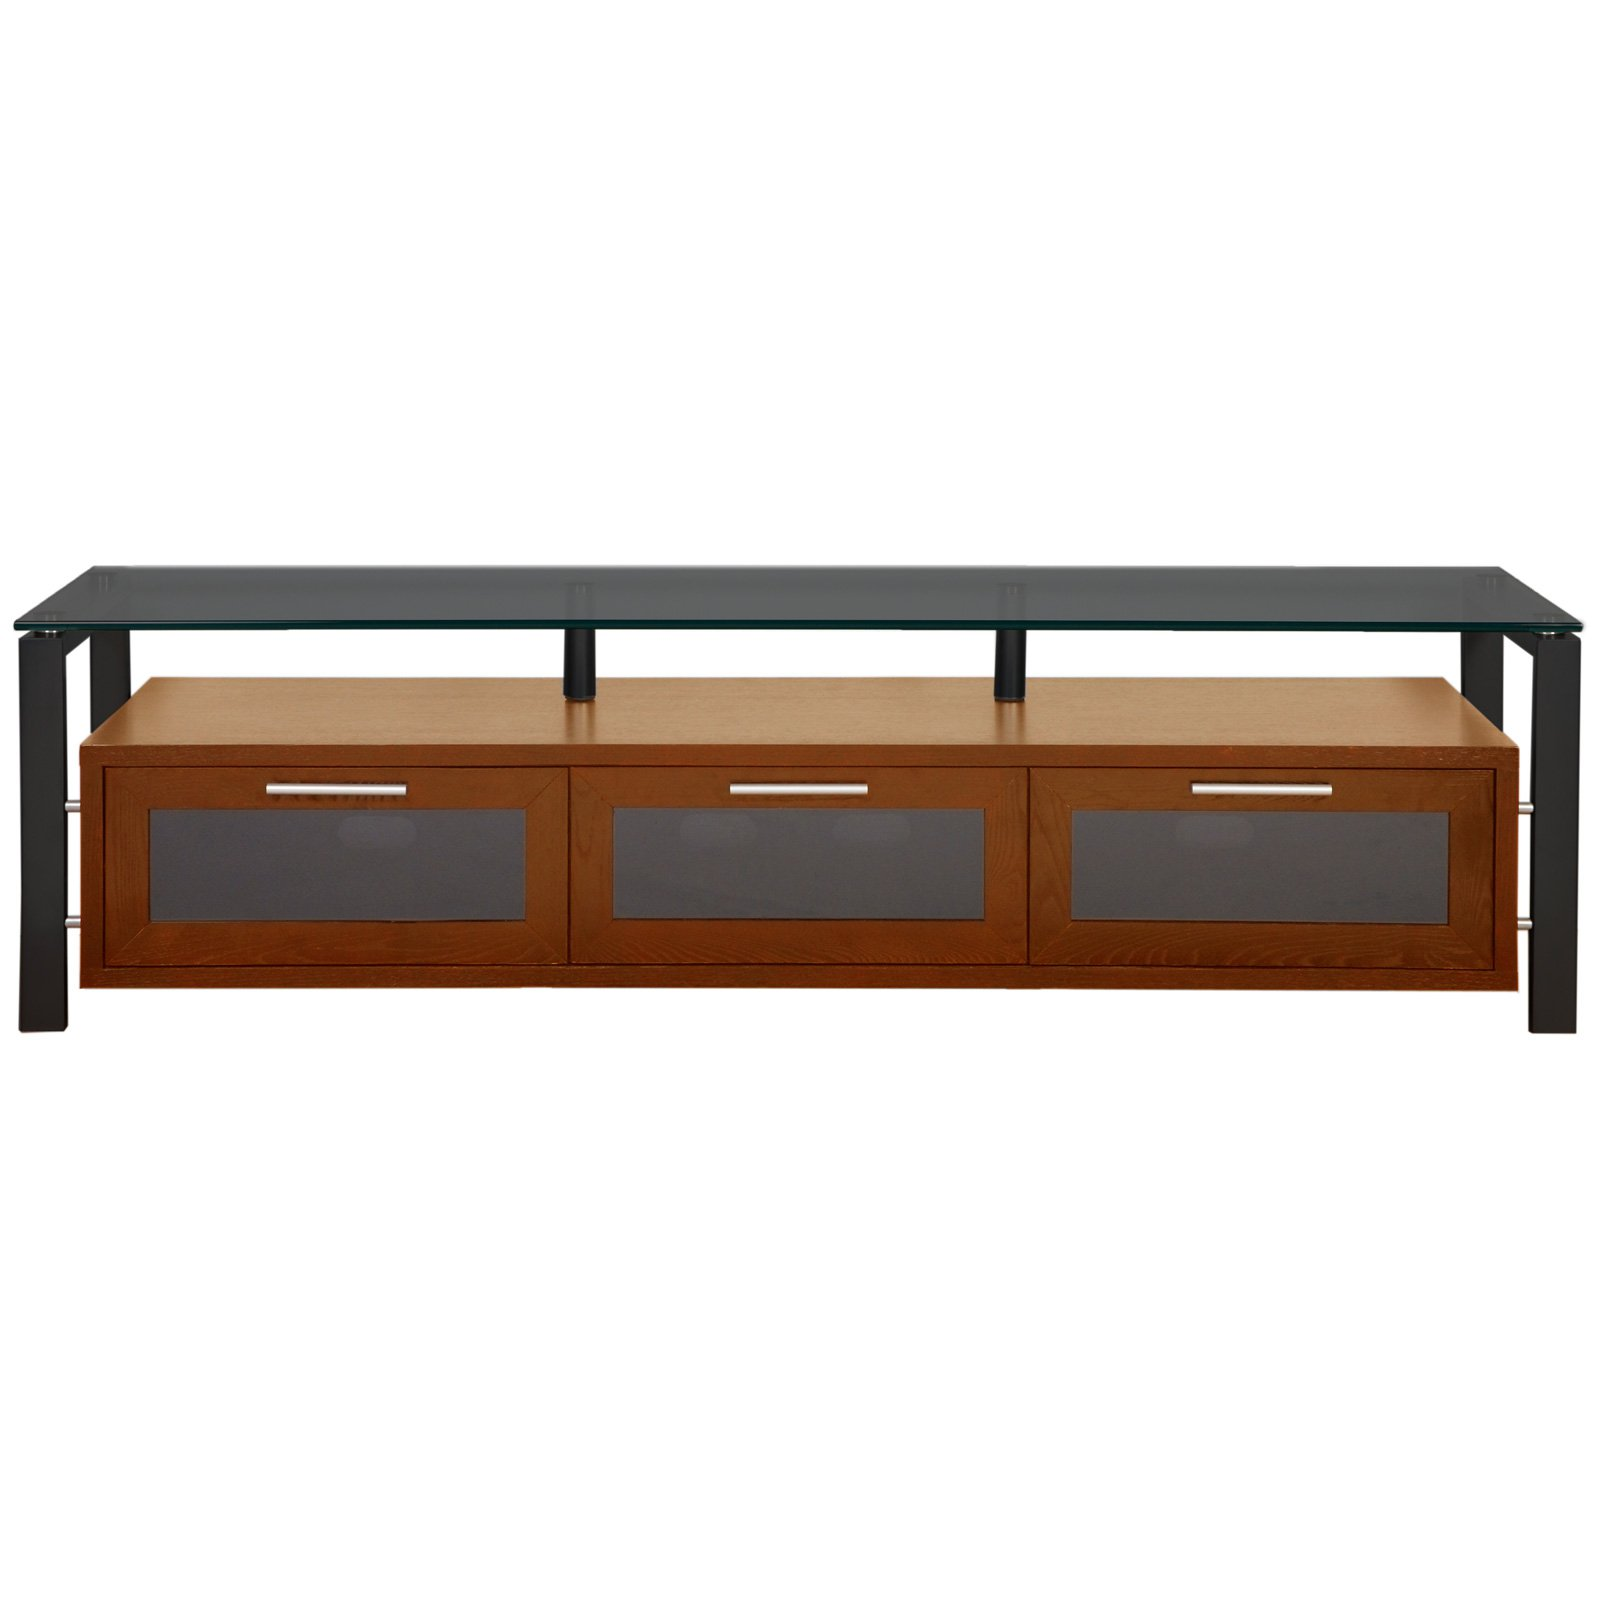 Plateau Decor 71 Inch TV Stand in Walnut/Black and Black